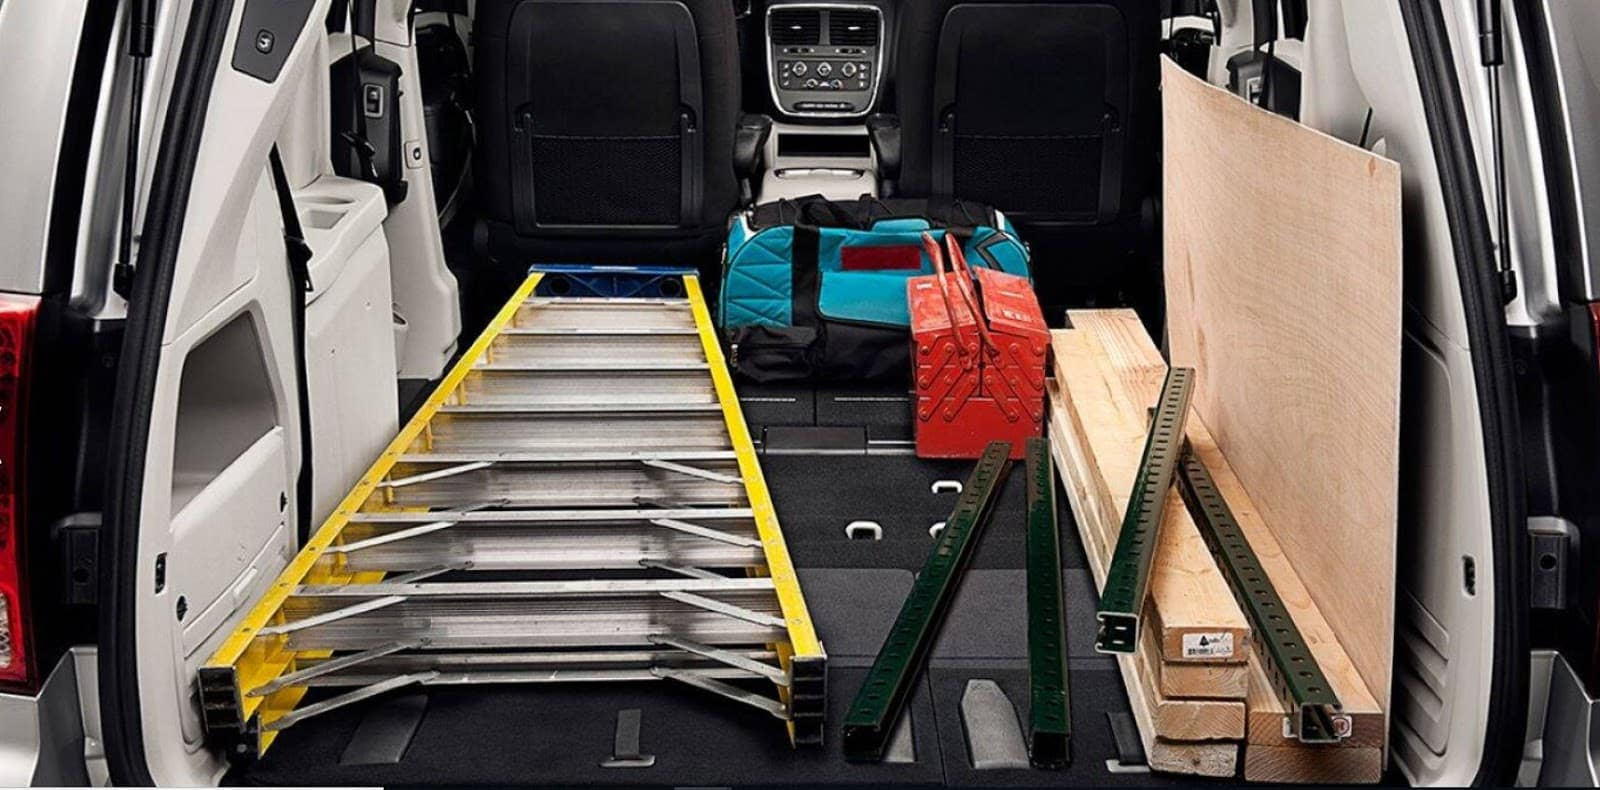 capability of storage in the dodge grand caravan with the folding seats showcased by ladder fitting, heavy wood, duffle bags, and other tools